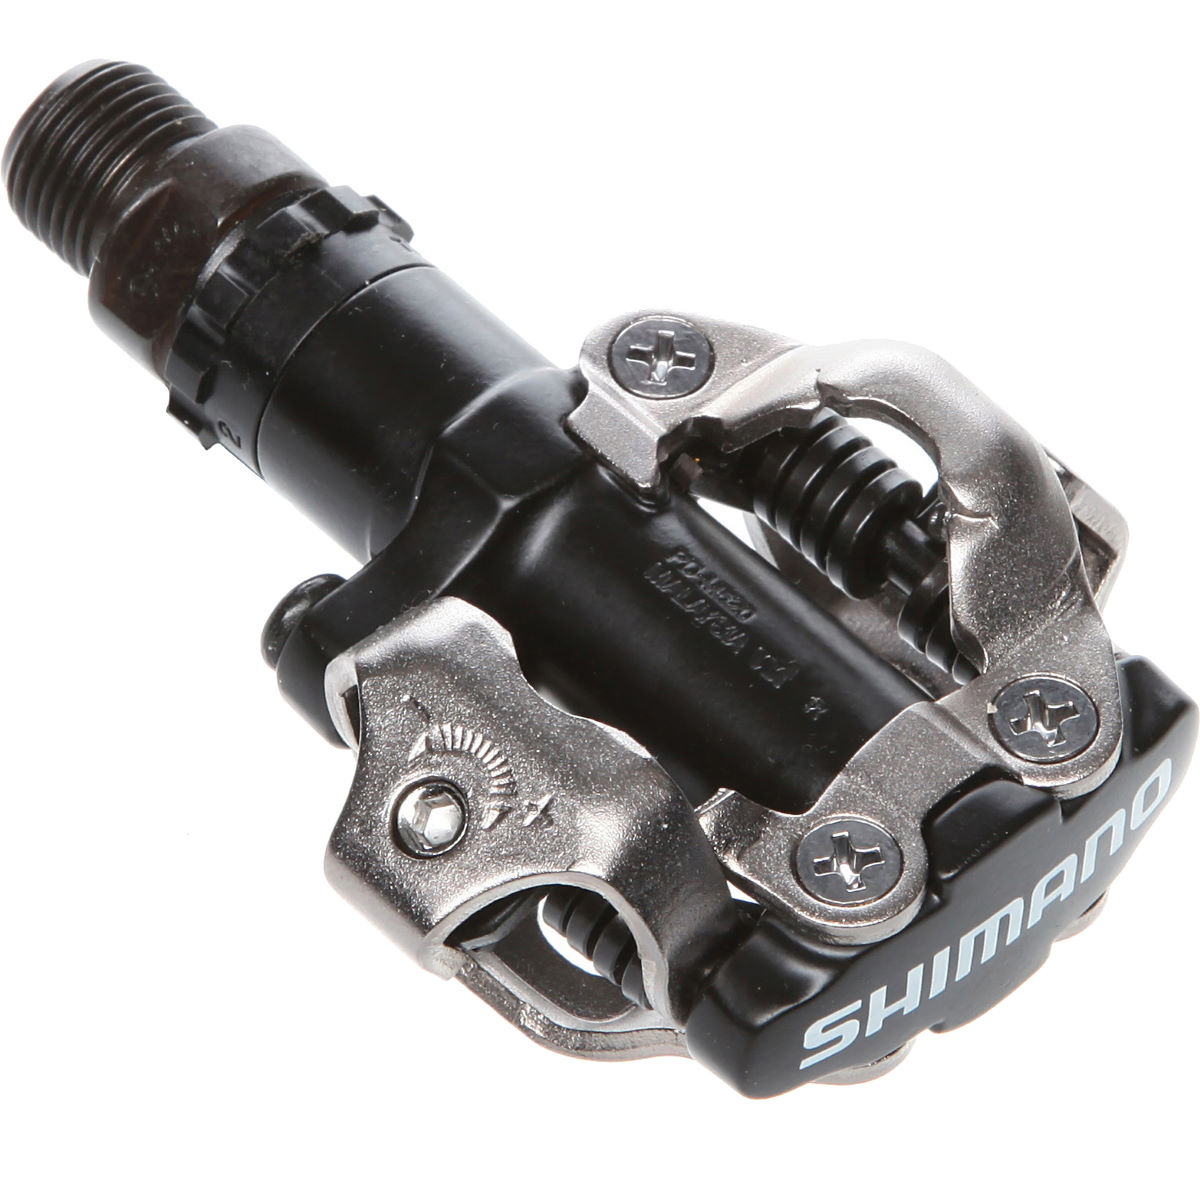 Shimano PD-M520 Pedals Clip-in Pedals